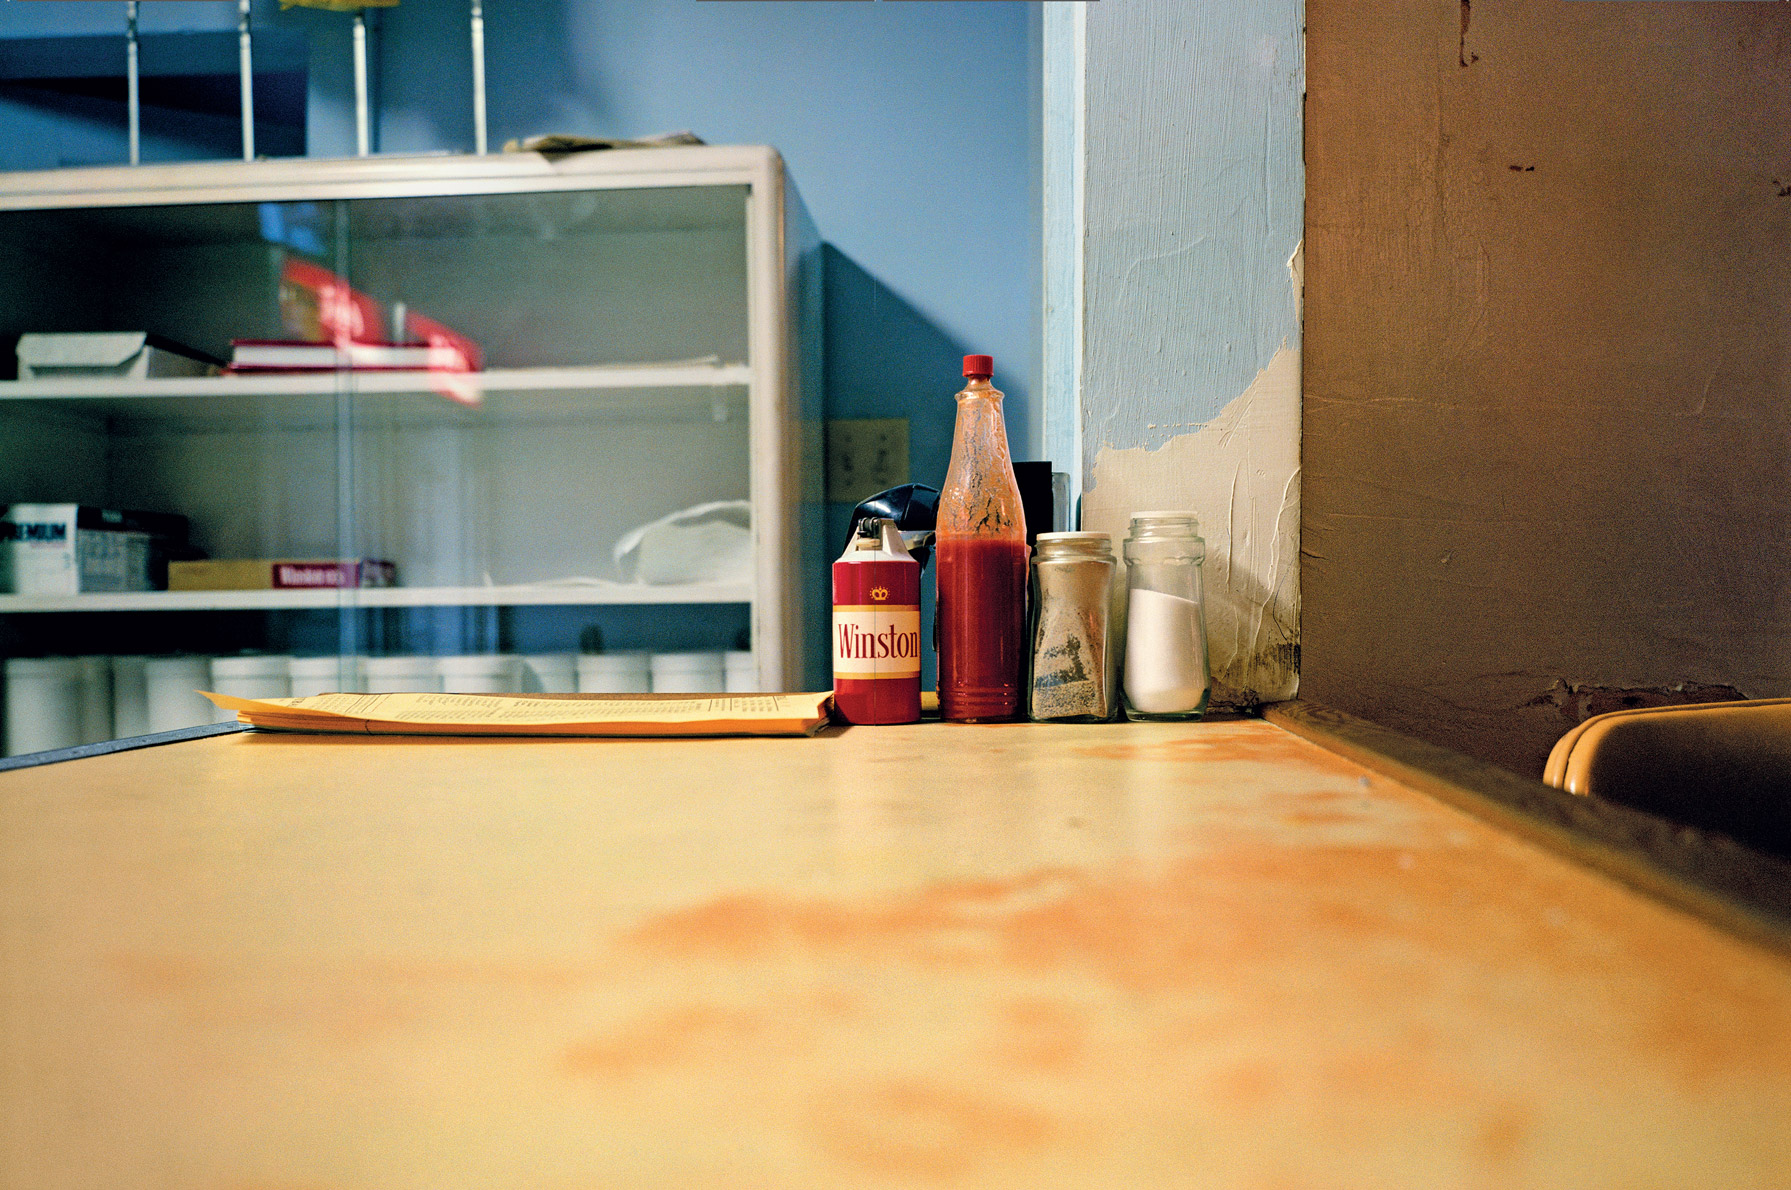 03_2013_05_BJP_Eggleston-3